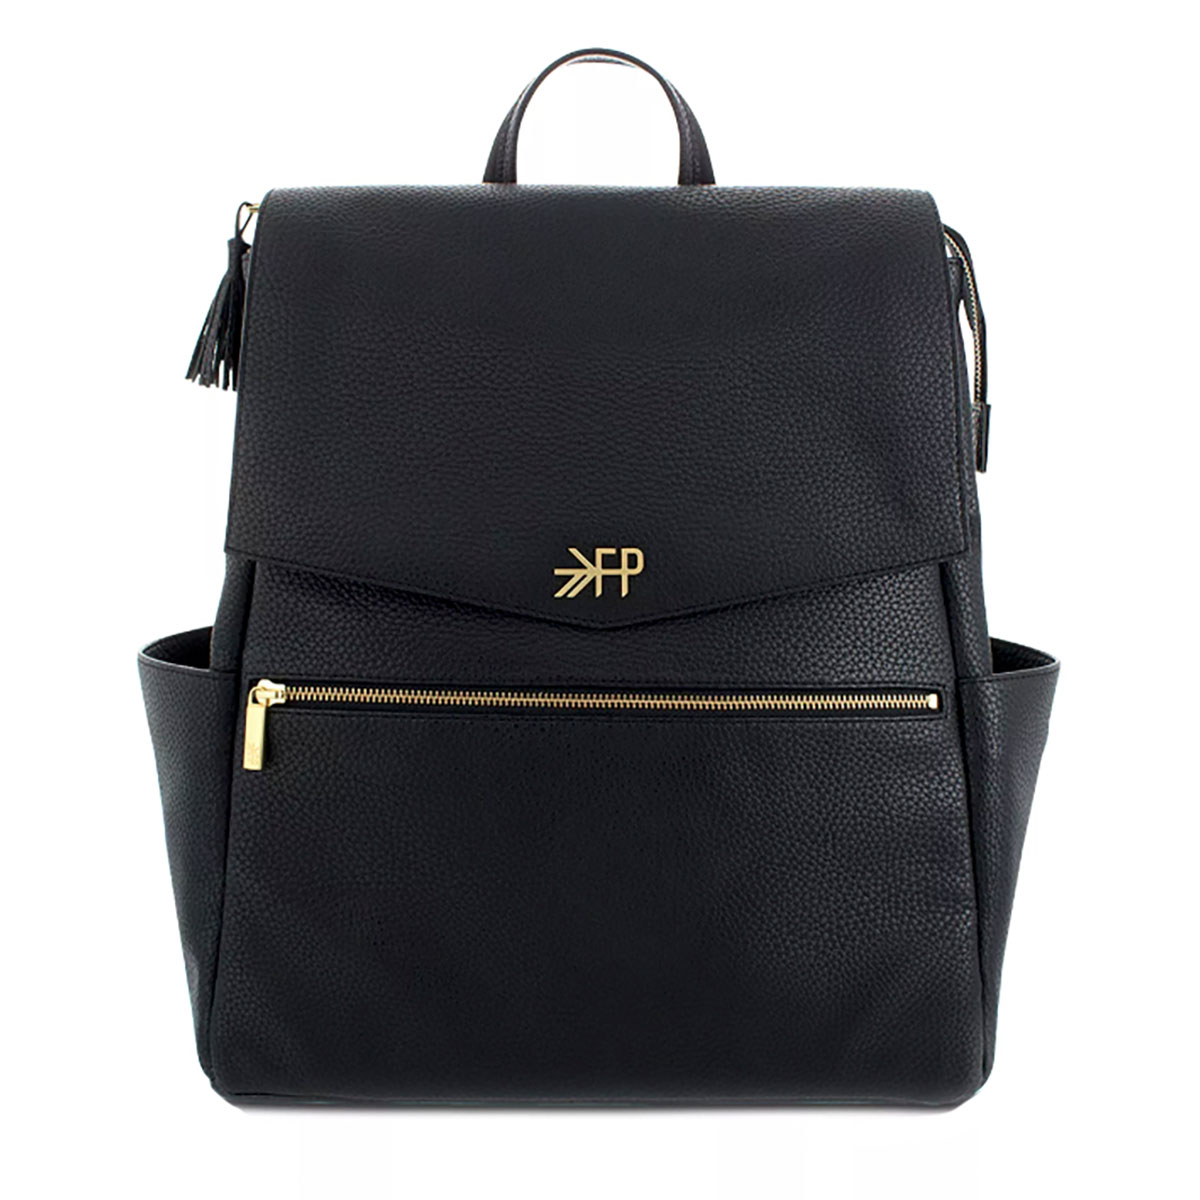 Freshly Picked Faux Leather Diaper Bag